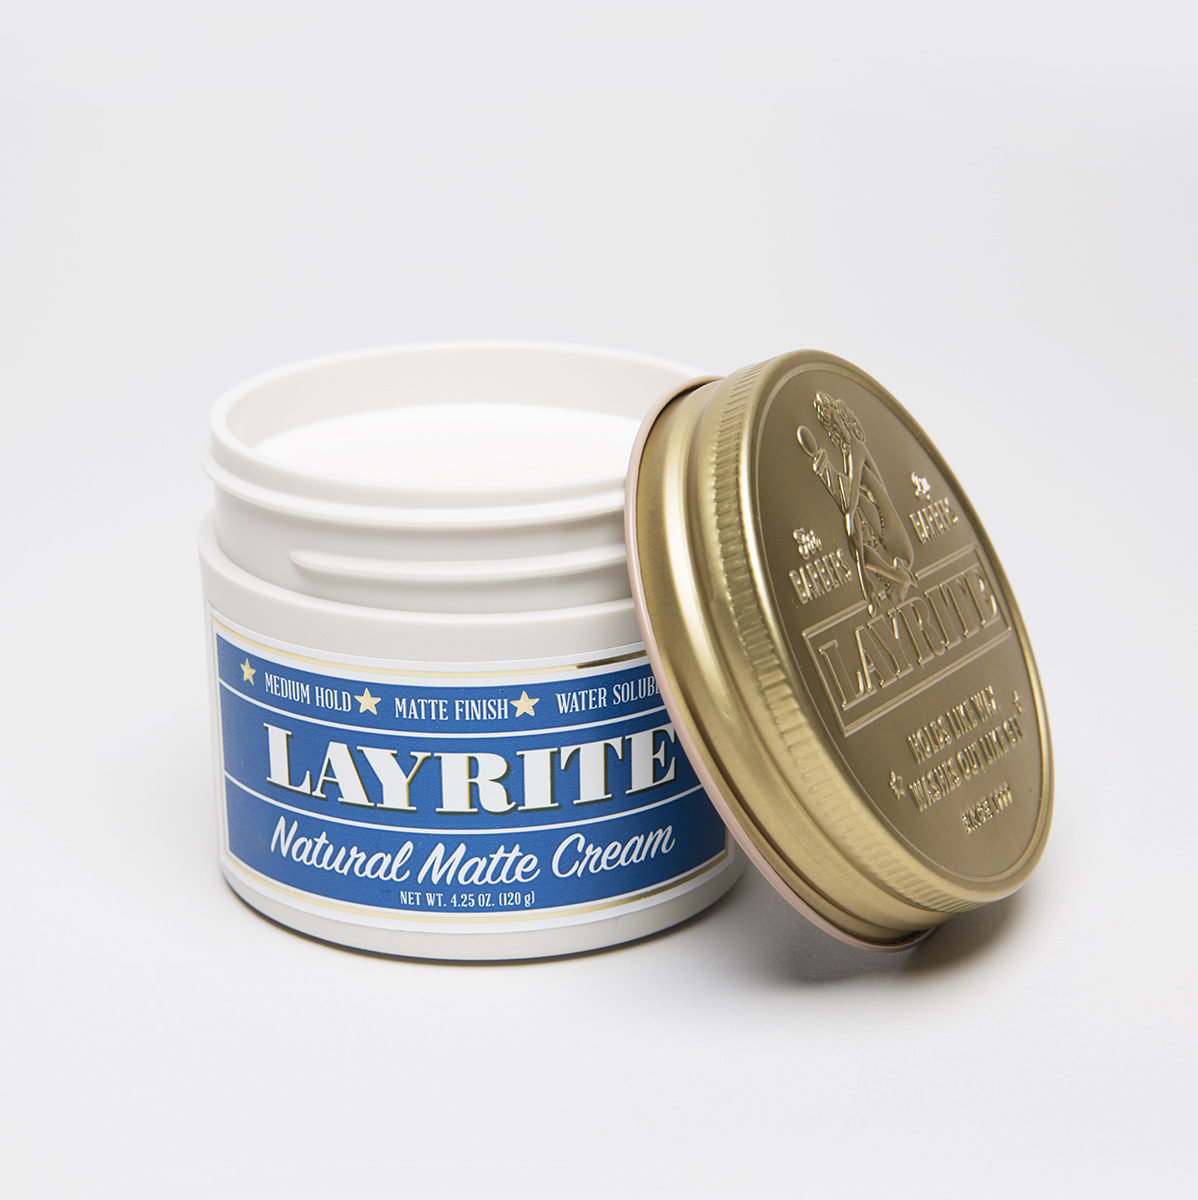 Layrite Natural Matte Cream Lid Open